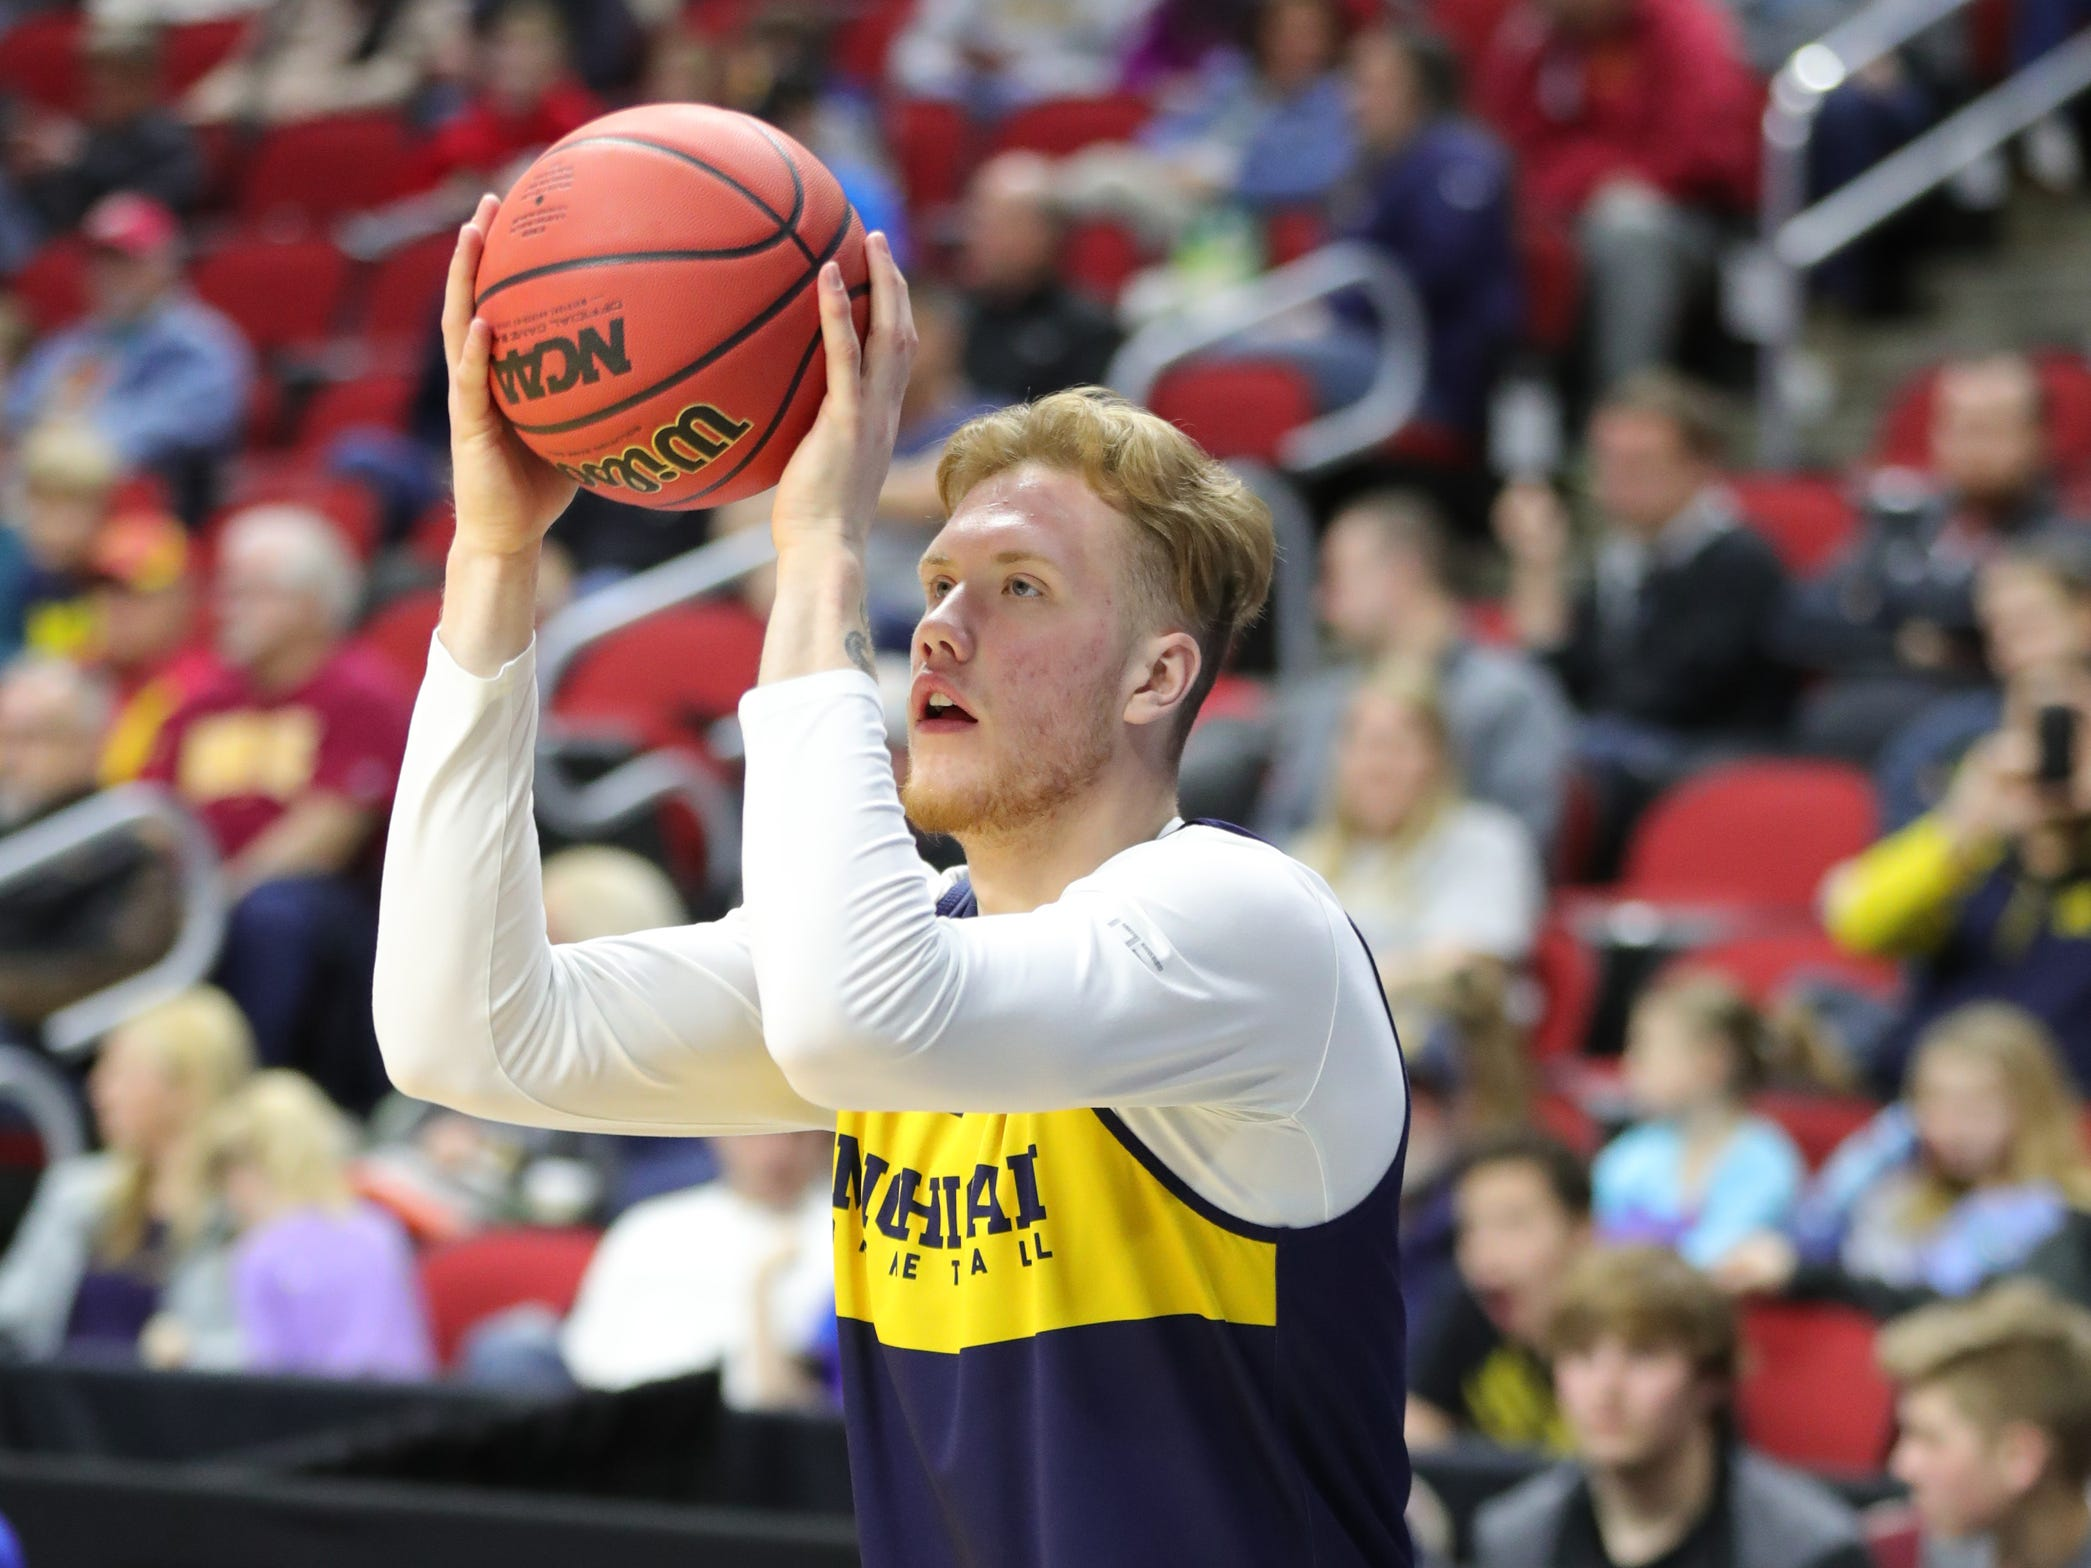 Michigan forward Ignas Brazdeikis shoots during practice for their first round NCAA Tournament game against Montana Wednesday, March 20, 2019 at Wells Fargo Arena in Des Moines, Iowa.